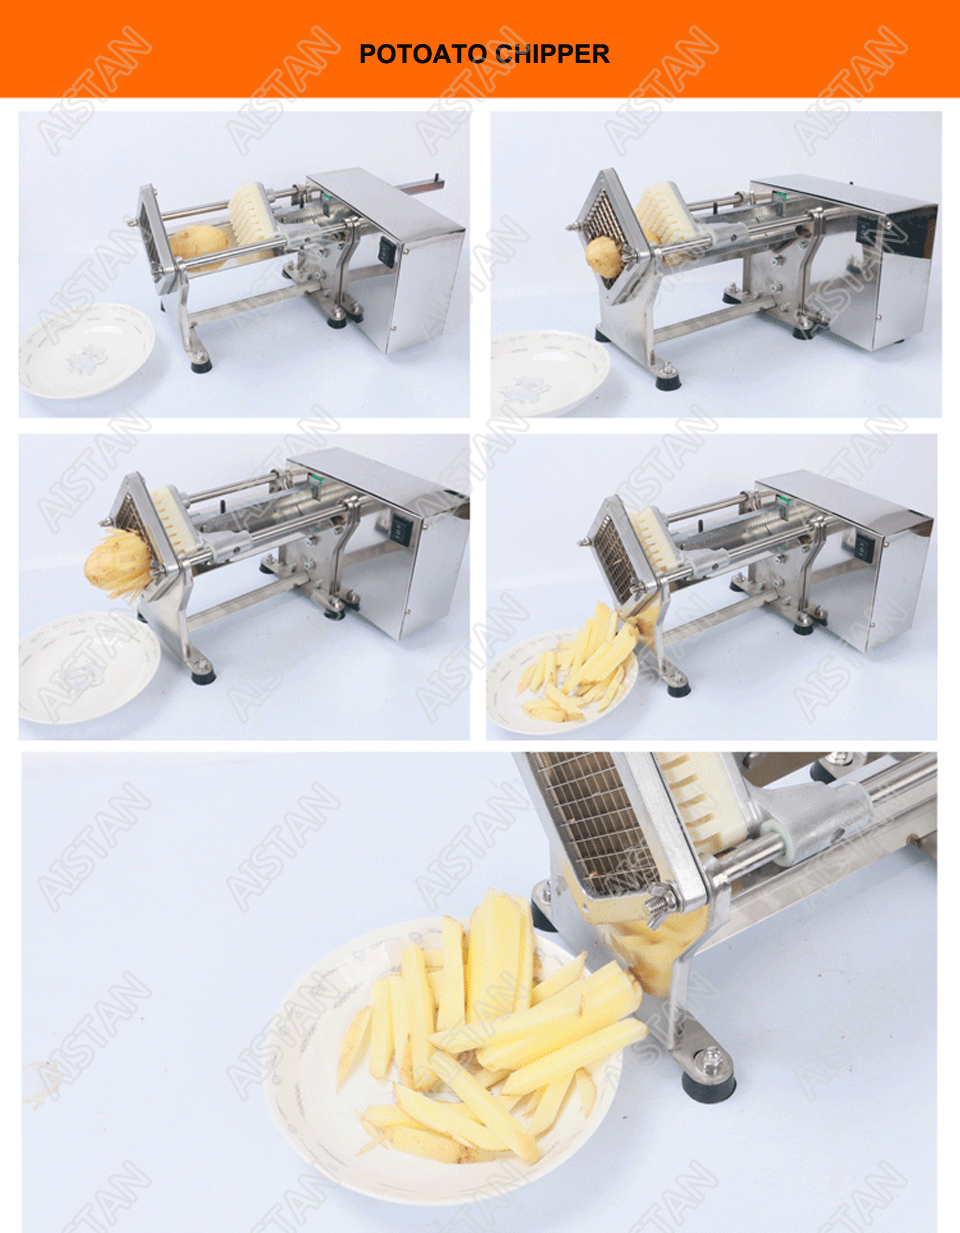 STJ19 Electric Potato Chipper Carrot Slicer Automatic Heavy Duty Stainless Steel 3